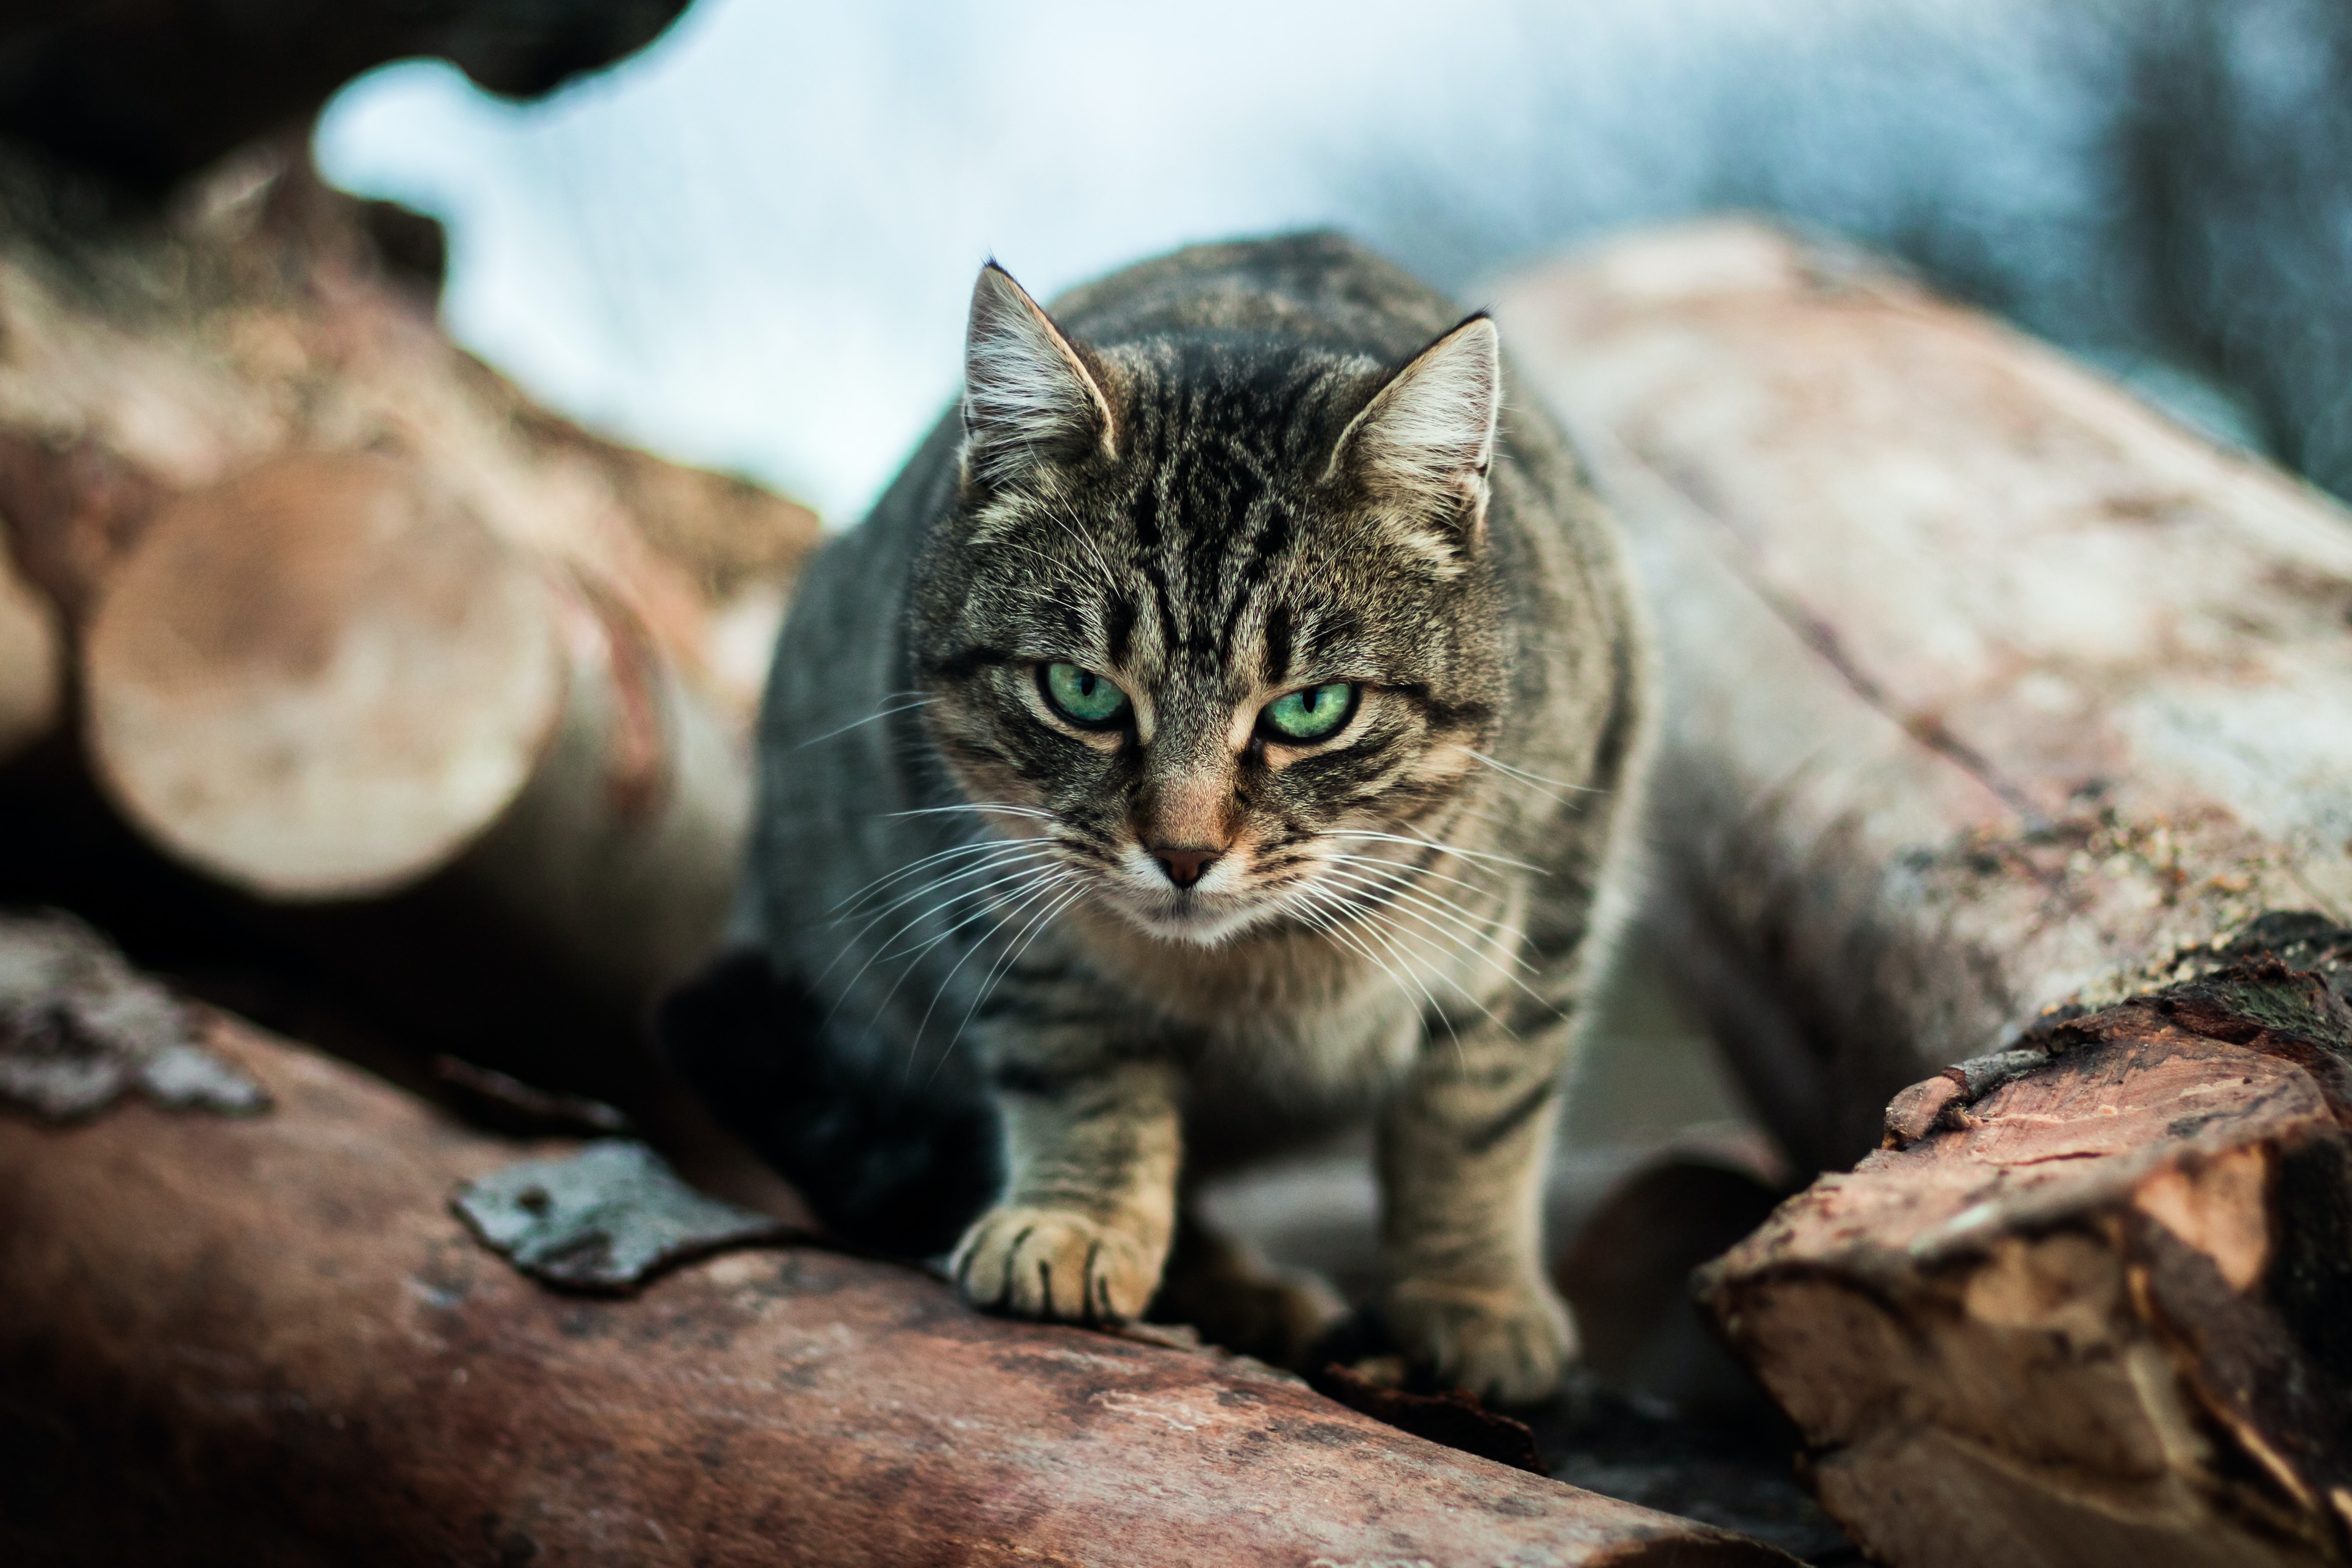 A green-eyed tabby on wood logs creeping towards the camera